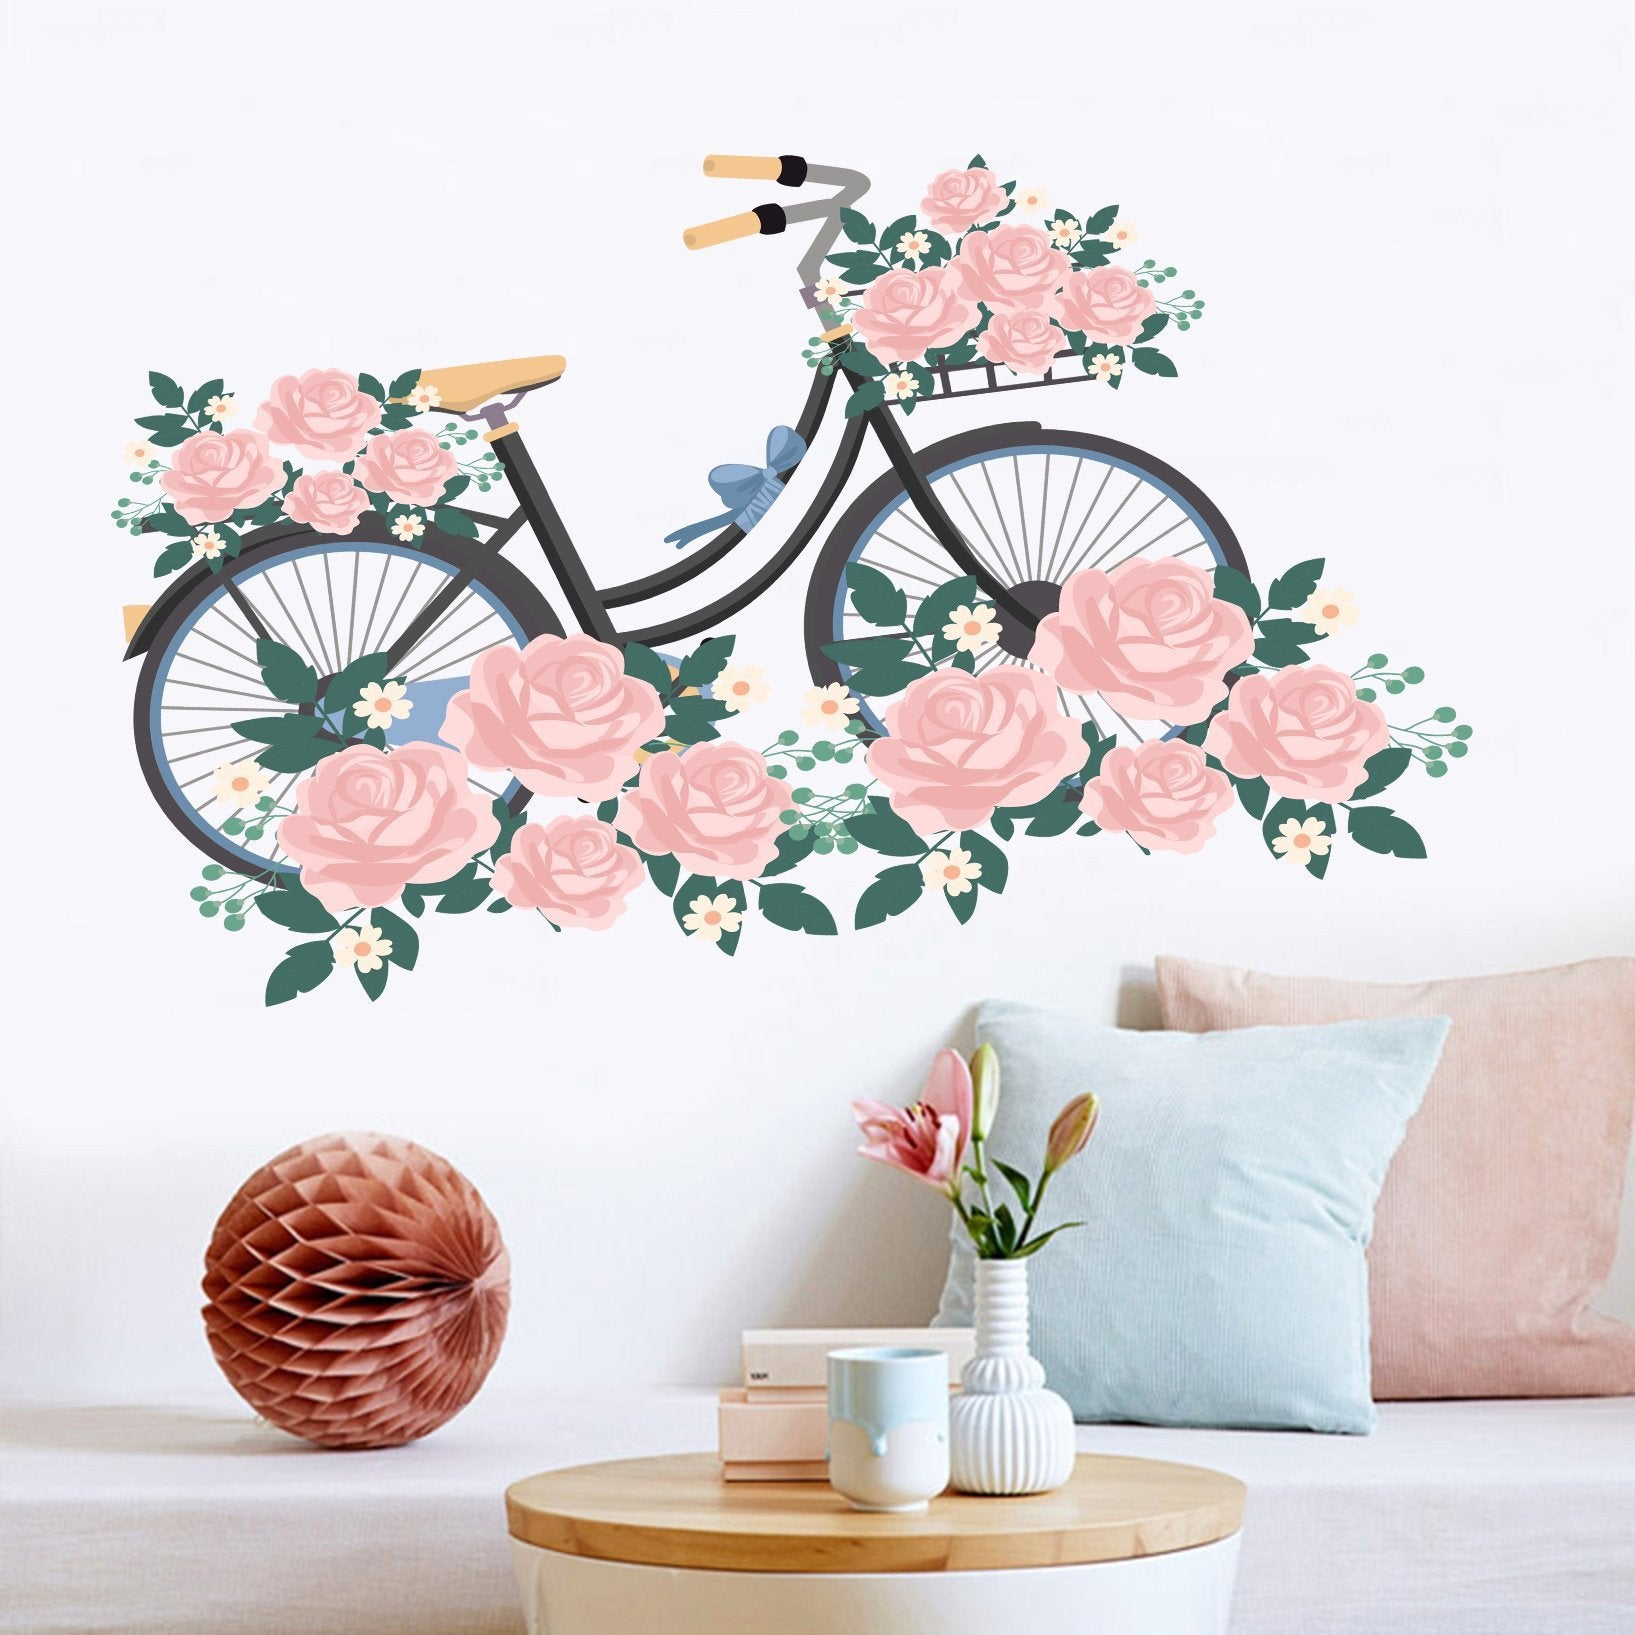 3D Bicycle Flower 025 Wall Stickers Wallpaper AJ Wallpaper